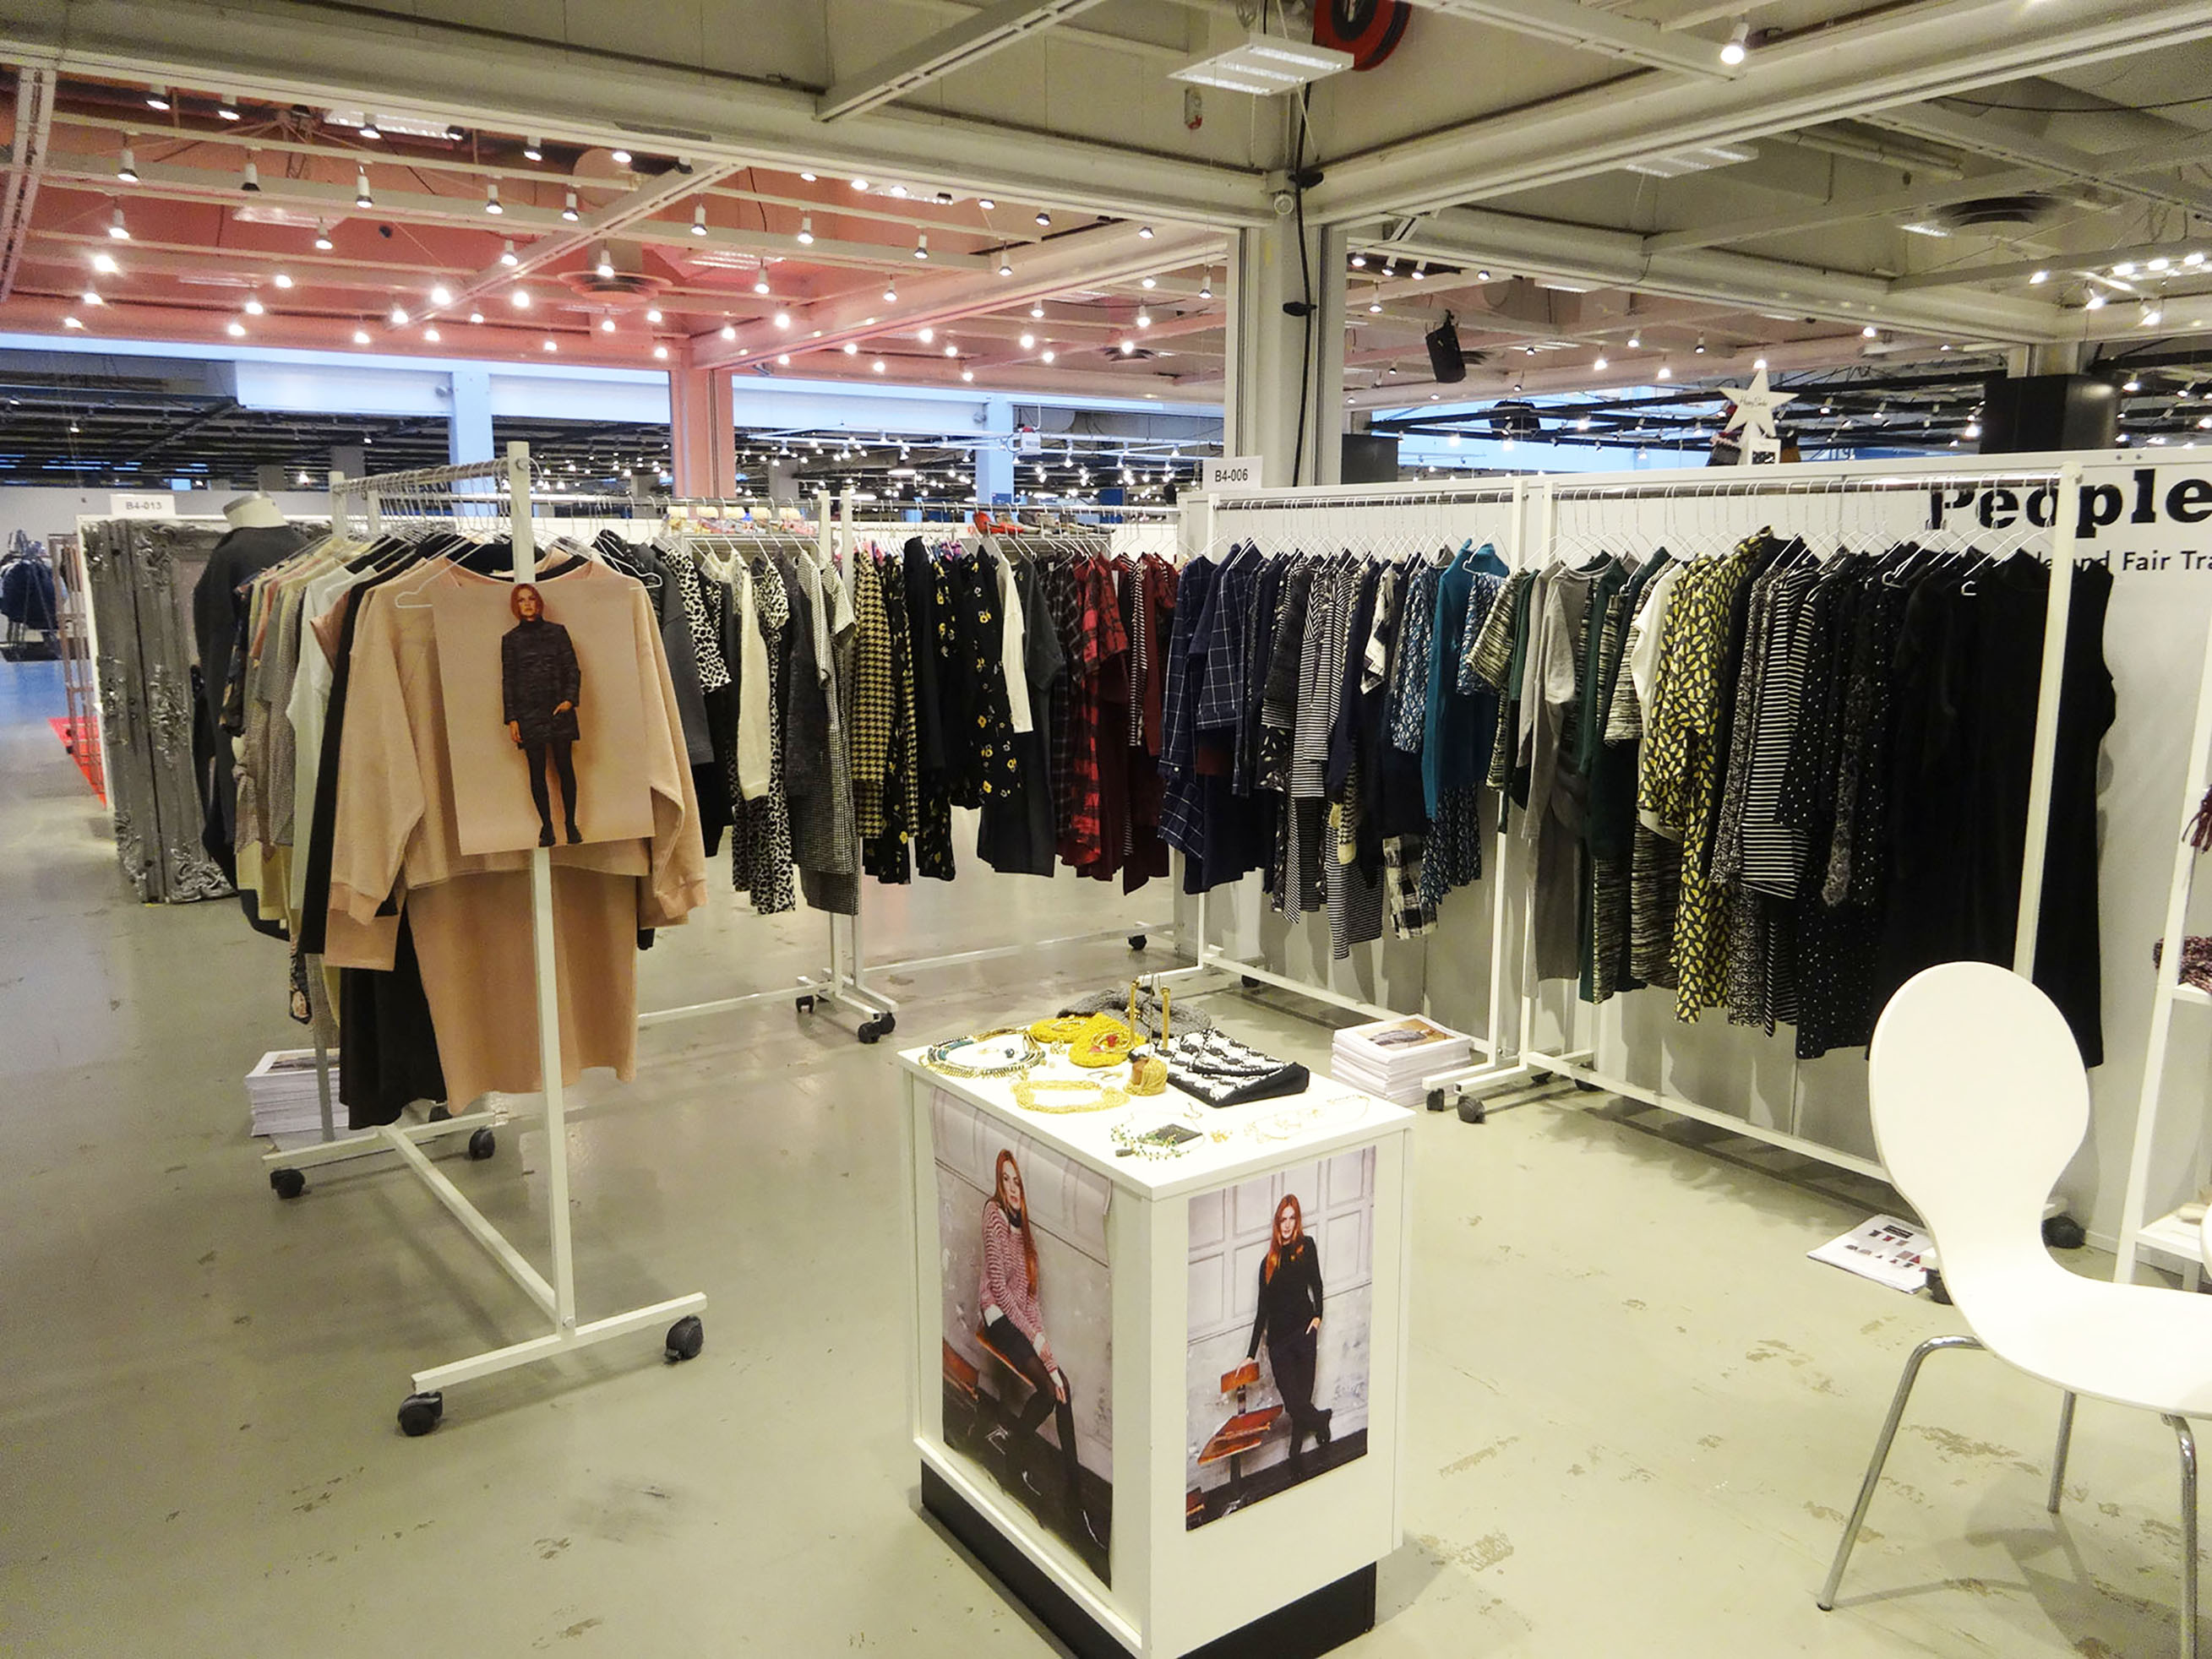 Next stop: Copenhagen International Fashion Fair